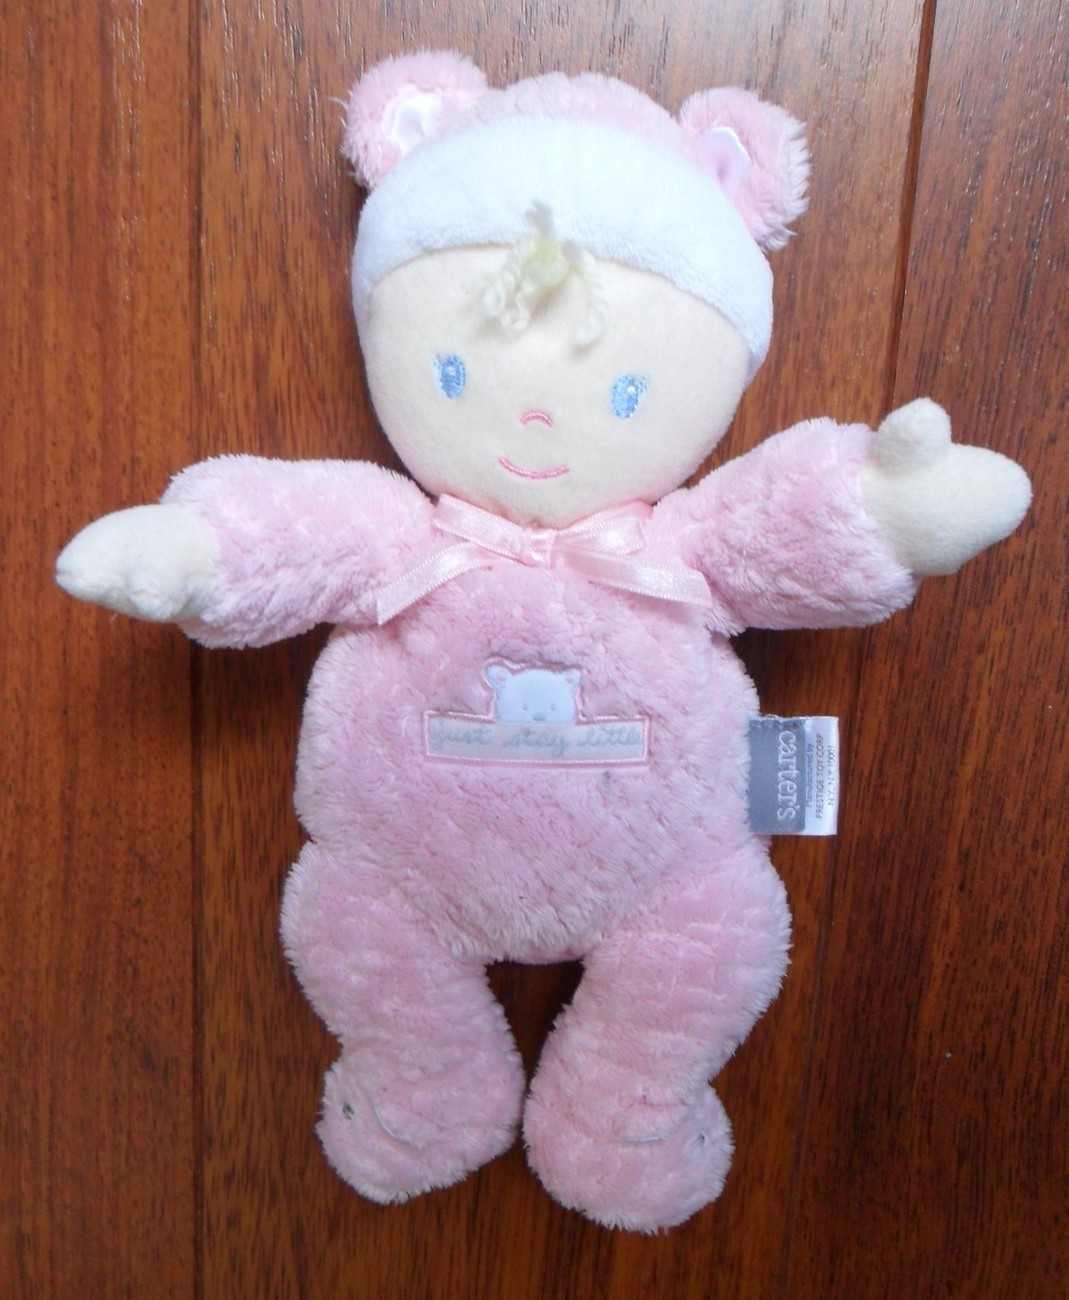 Carter's Just Stay Little Pink Baby Doll Plush Lovey Rattle Bear Toy Girl Dolly